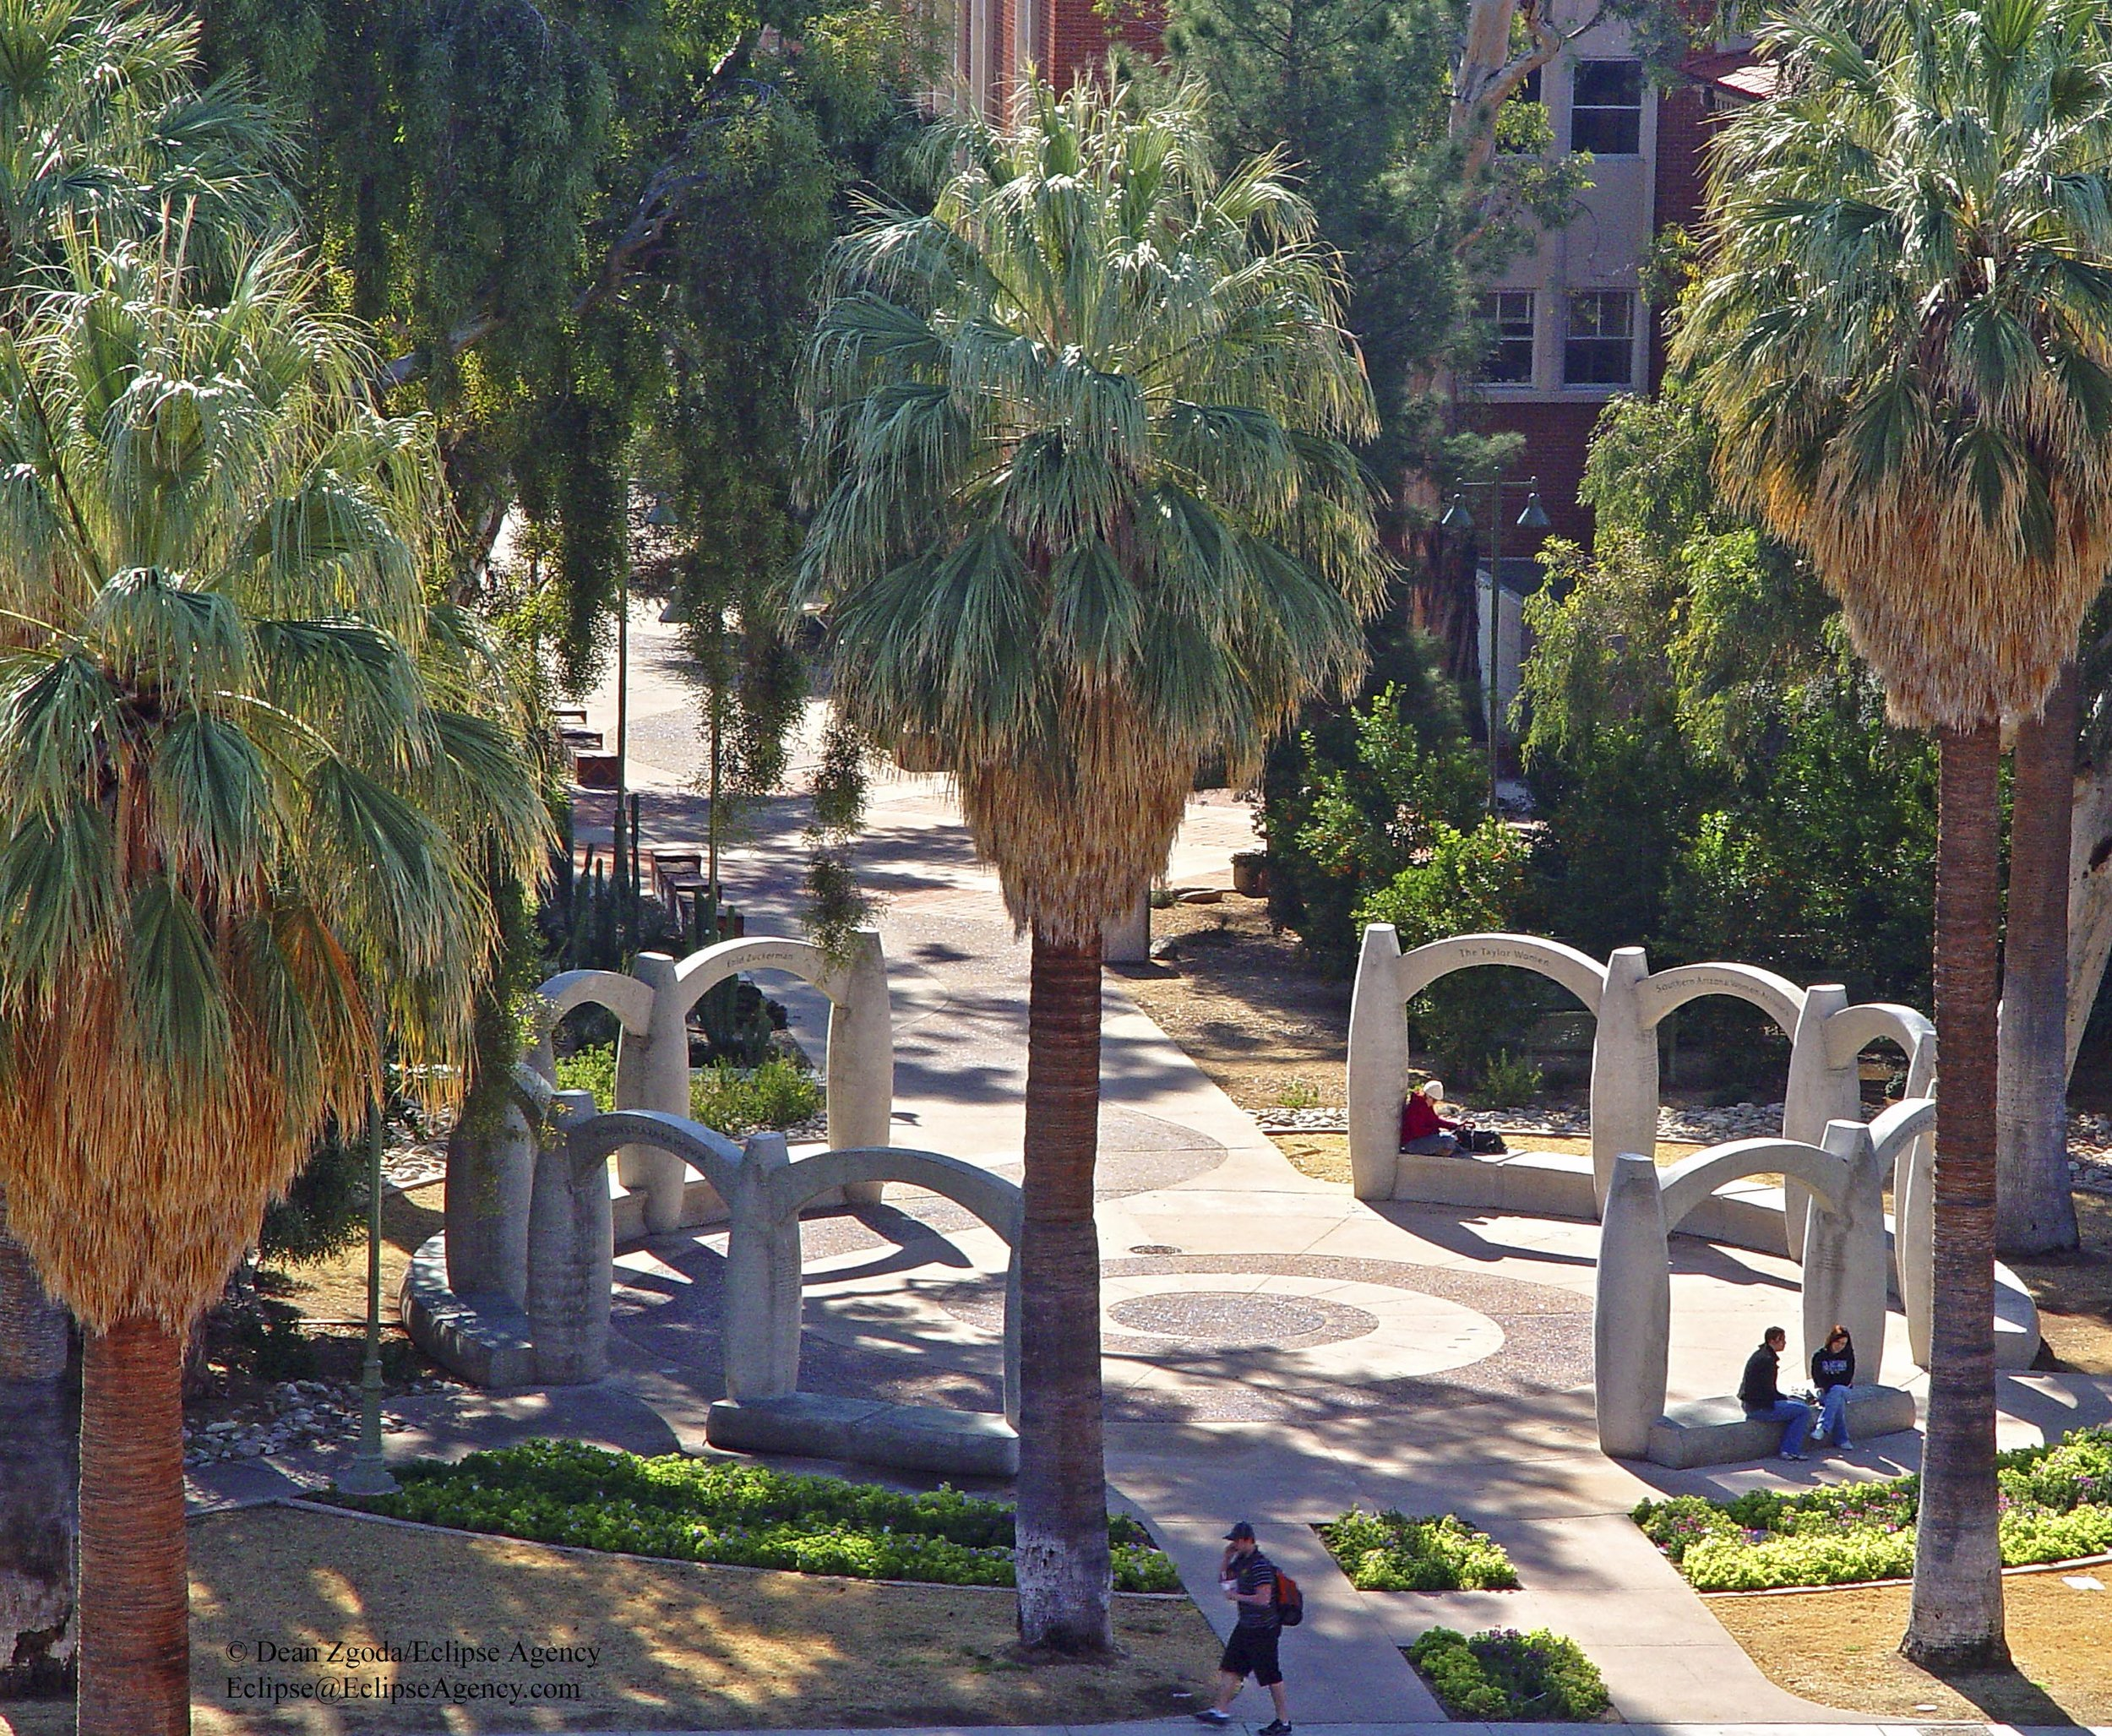 University of Arizona - Women's Plaza of Honor